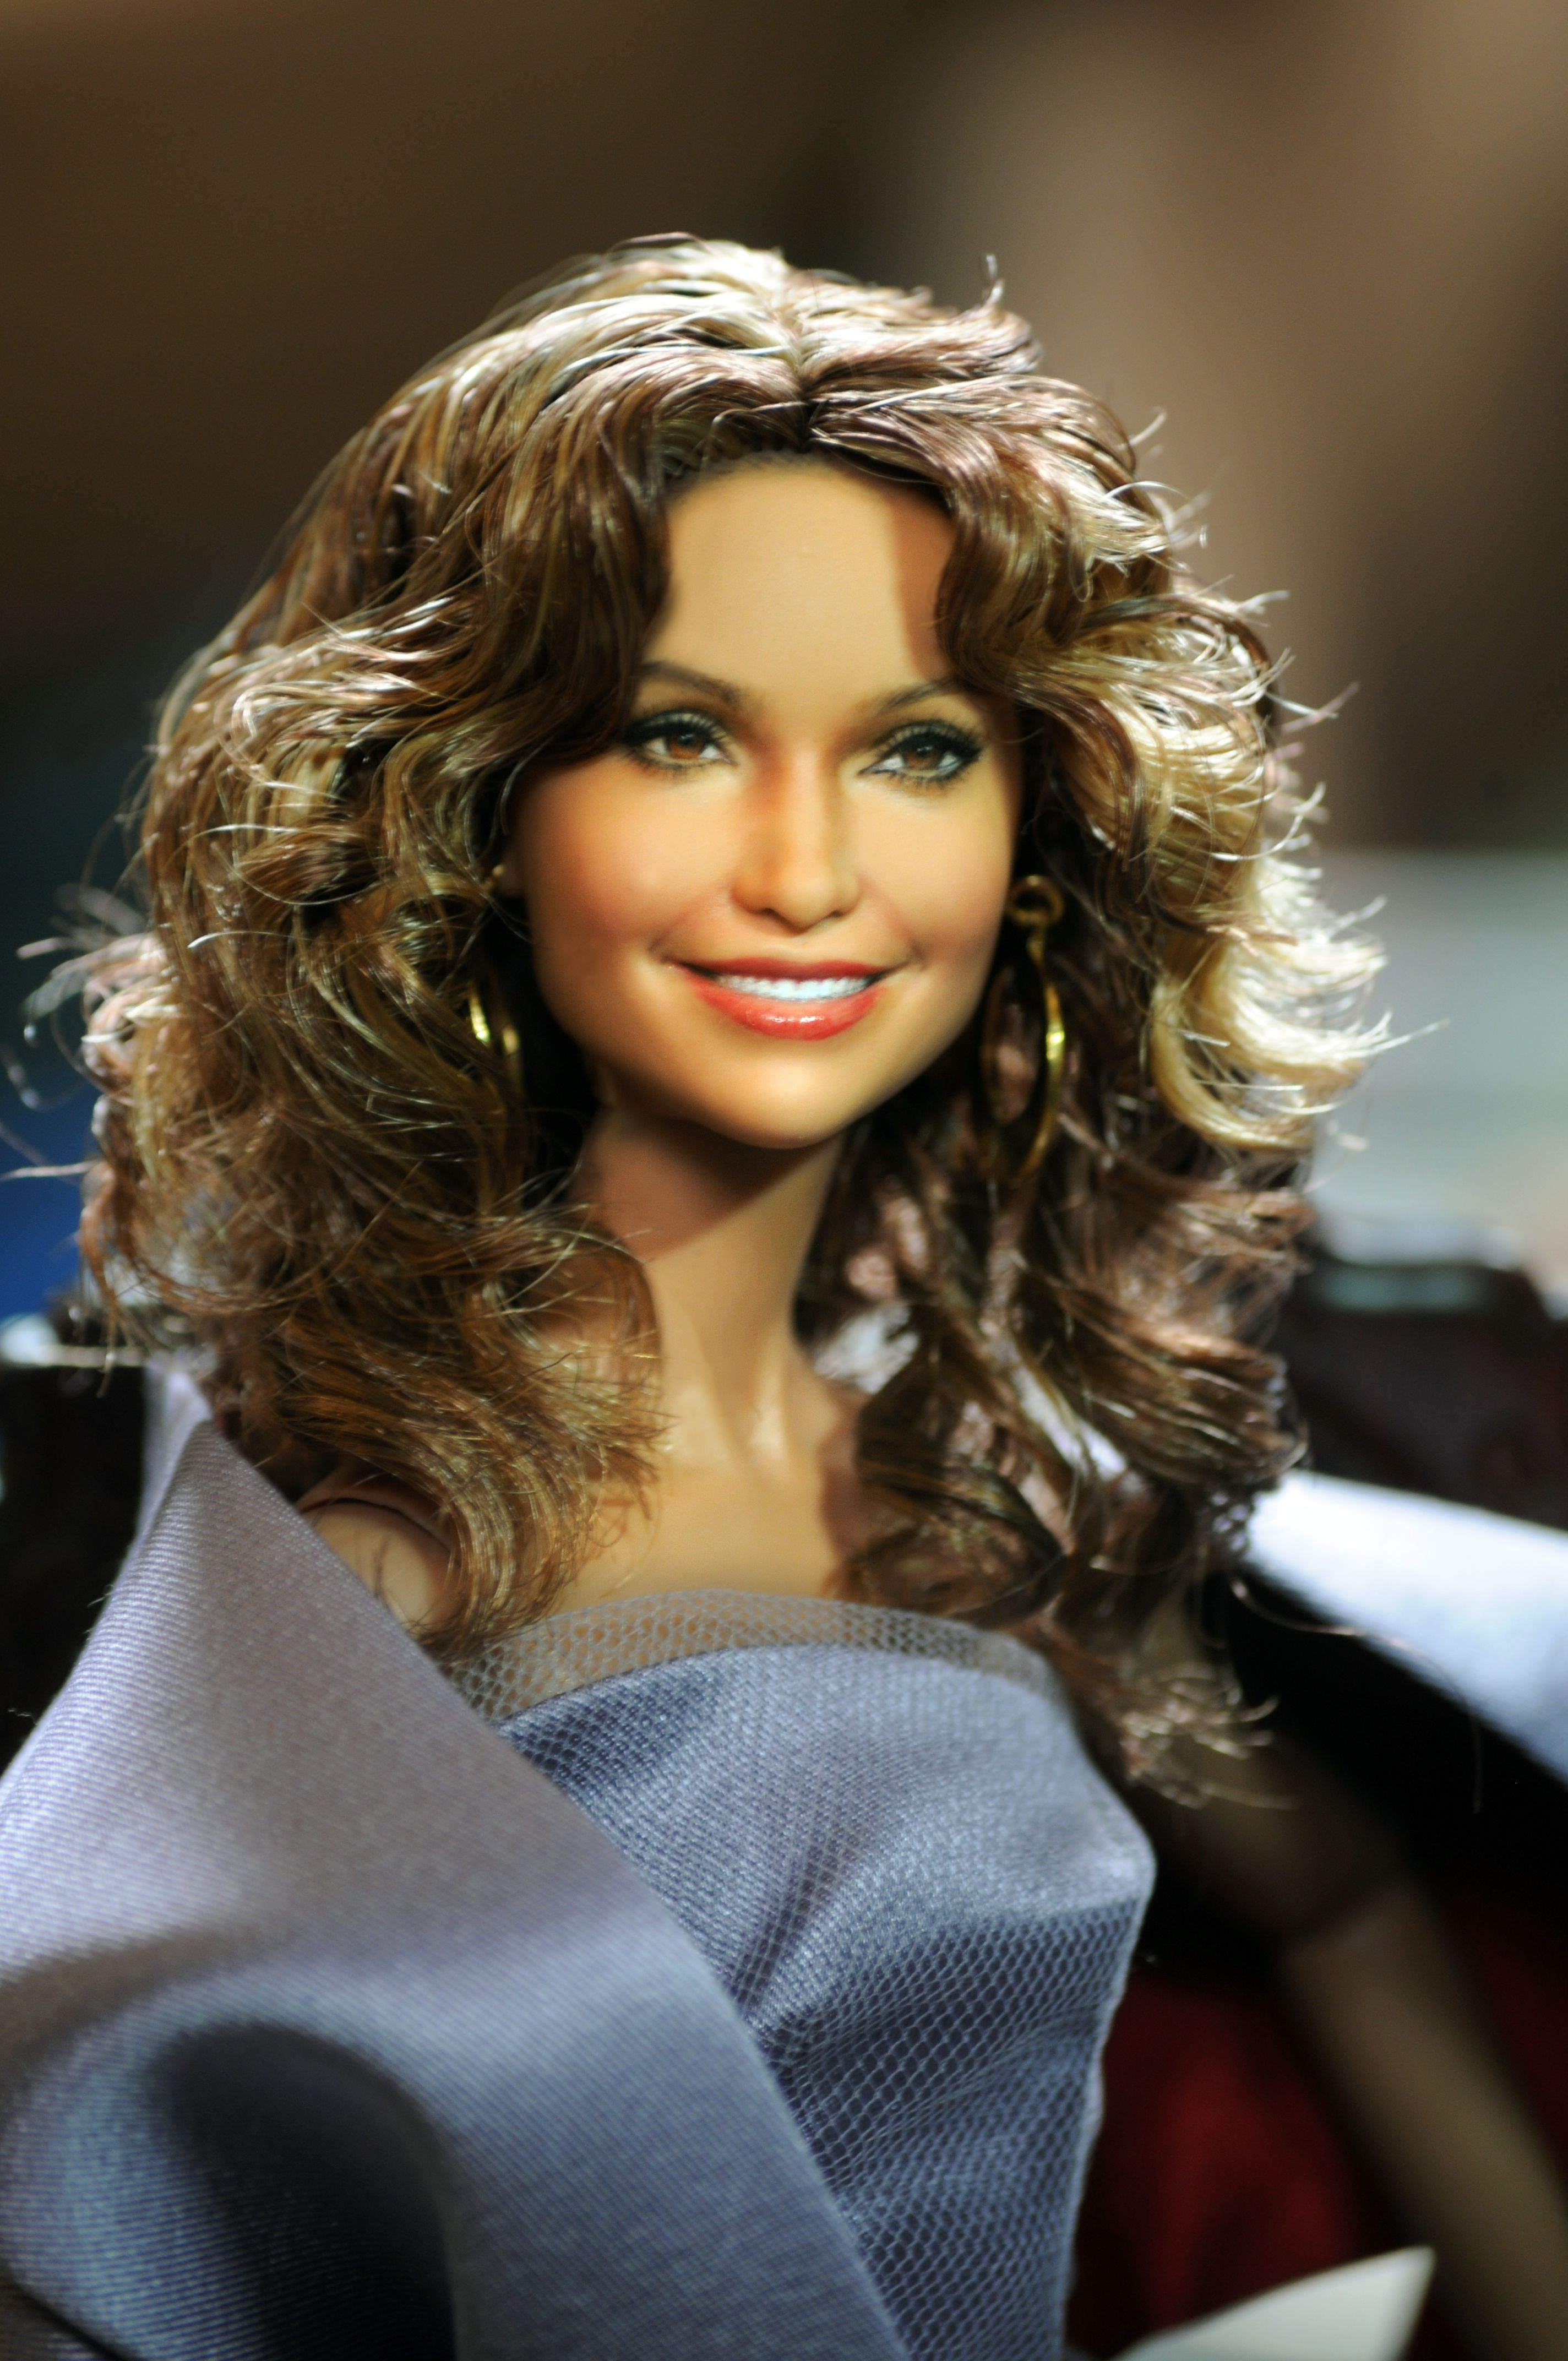 mattel barbie of jennifer lopez  world tour doll  as repainted and restyled by noel cruz of